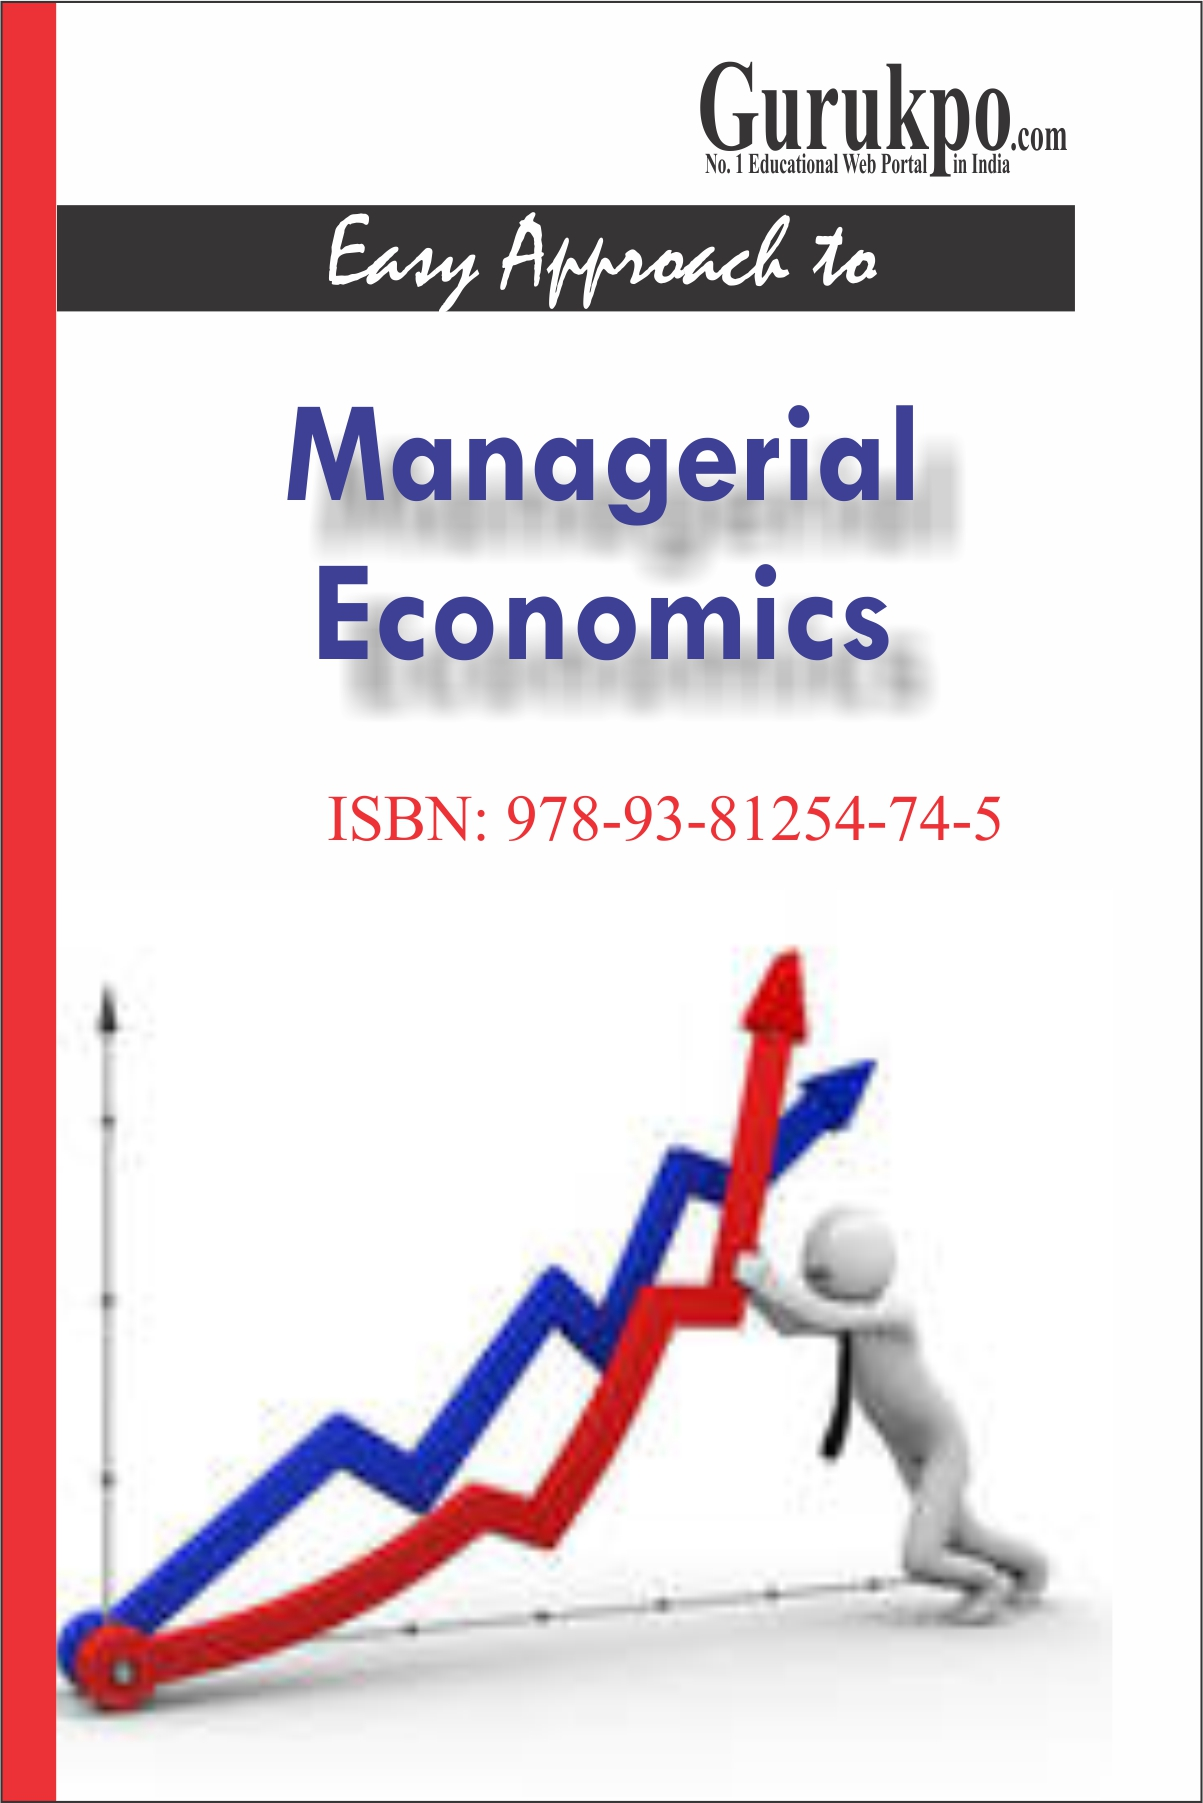 managerial economicse Managerial economics, application of economic principles to decision-making in business firms or of other management units the basic concepts are derived mainly from microeconomic theory, which studies the behaviour of individual consumers, firms, and industries, but.